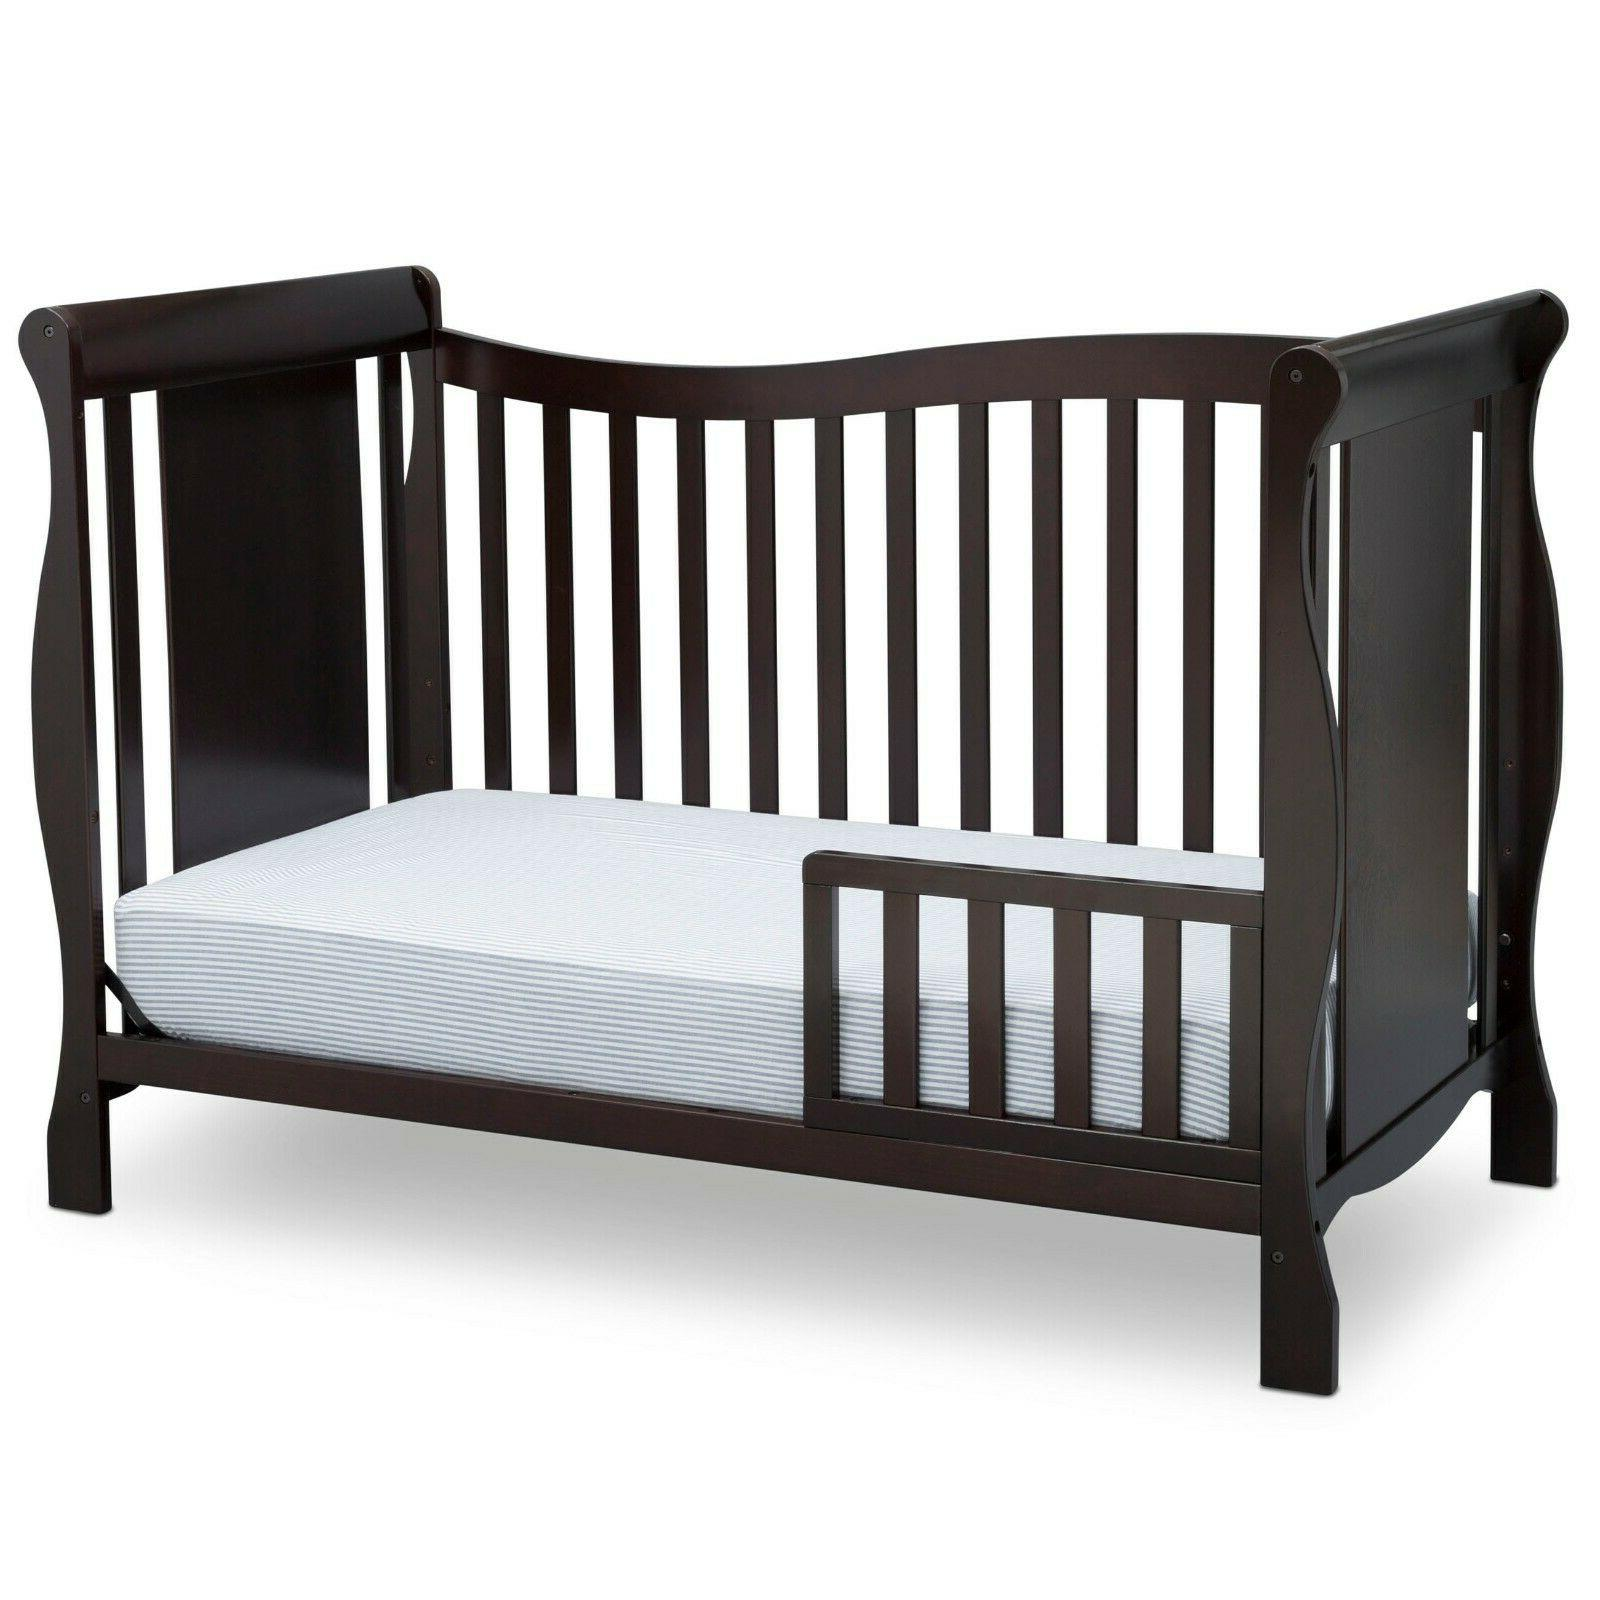 Delta Brookside 4-in-1 Fixed-Side Convertible Crib, JPMA Certified